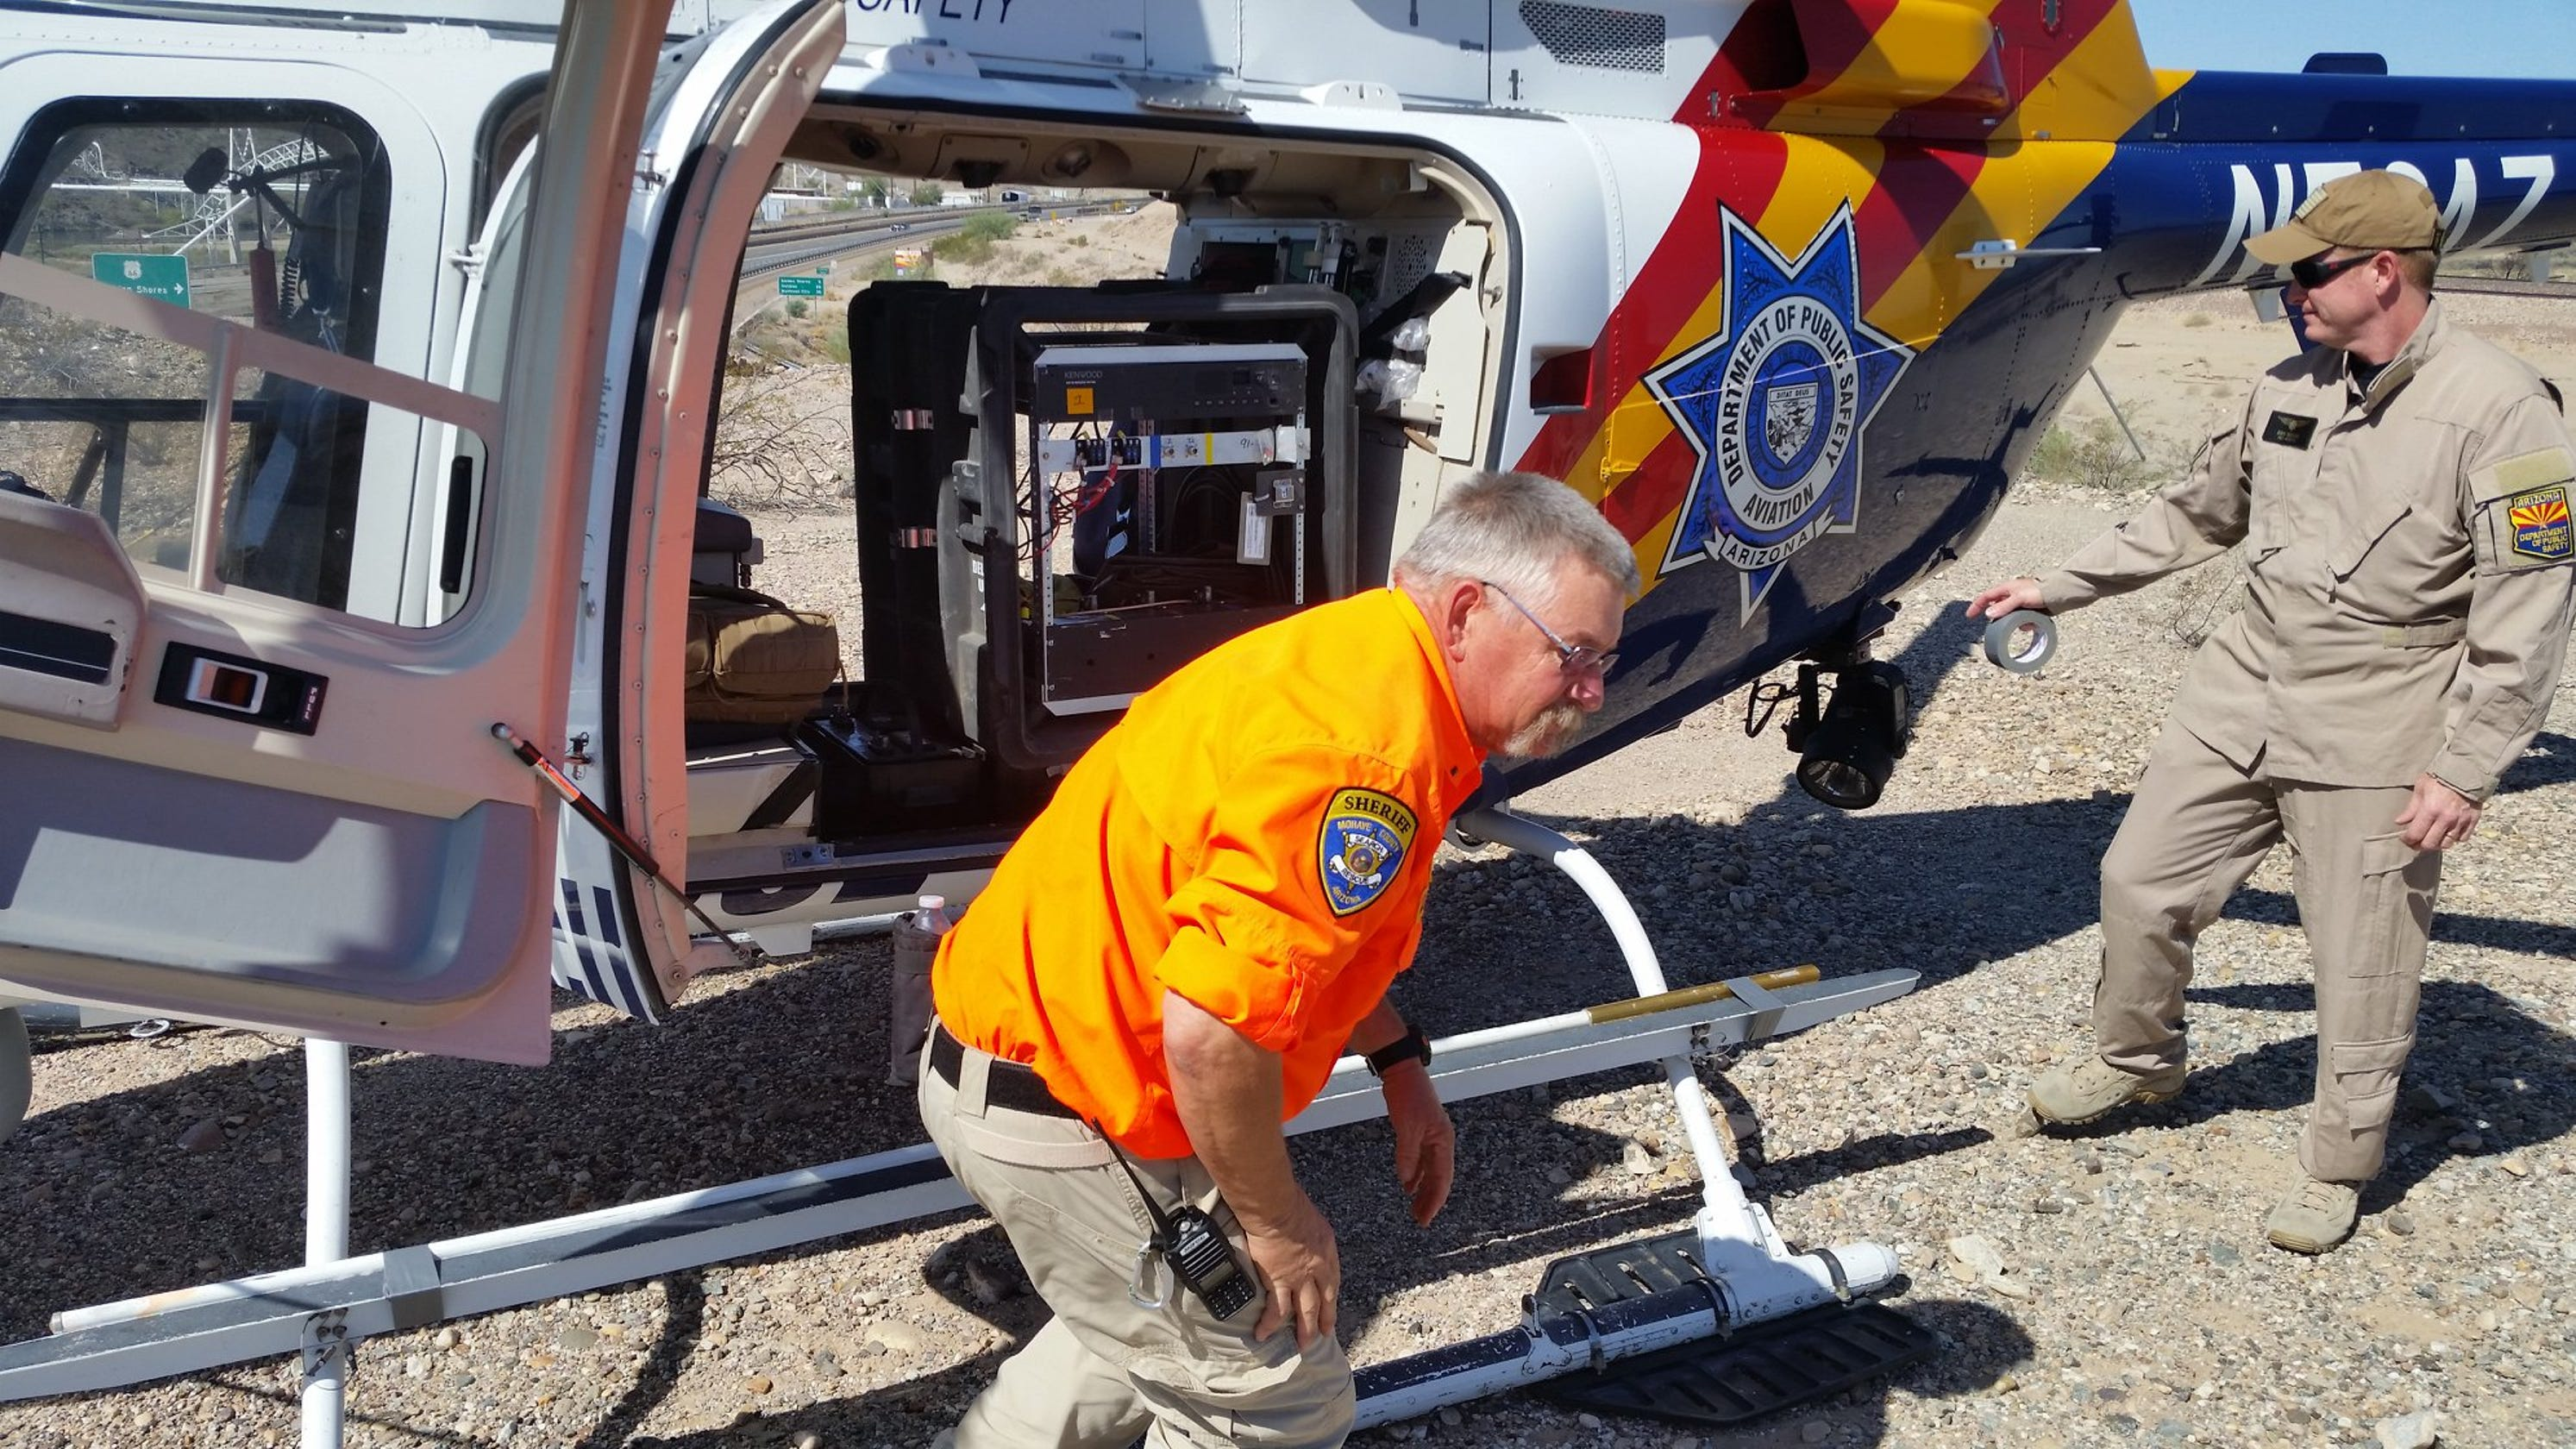 Lake Havasu two-boat collision: Here's what we know